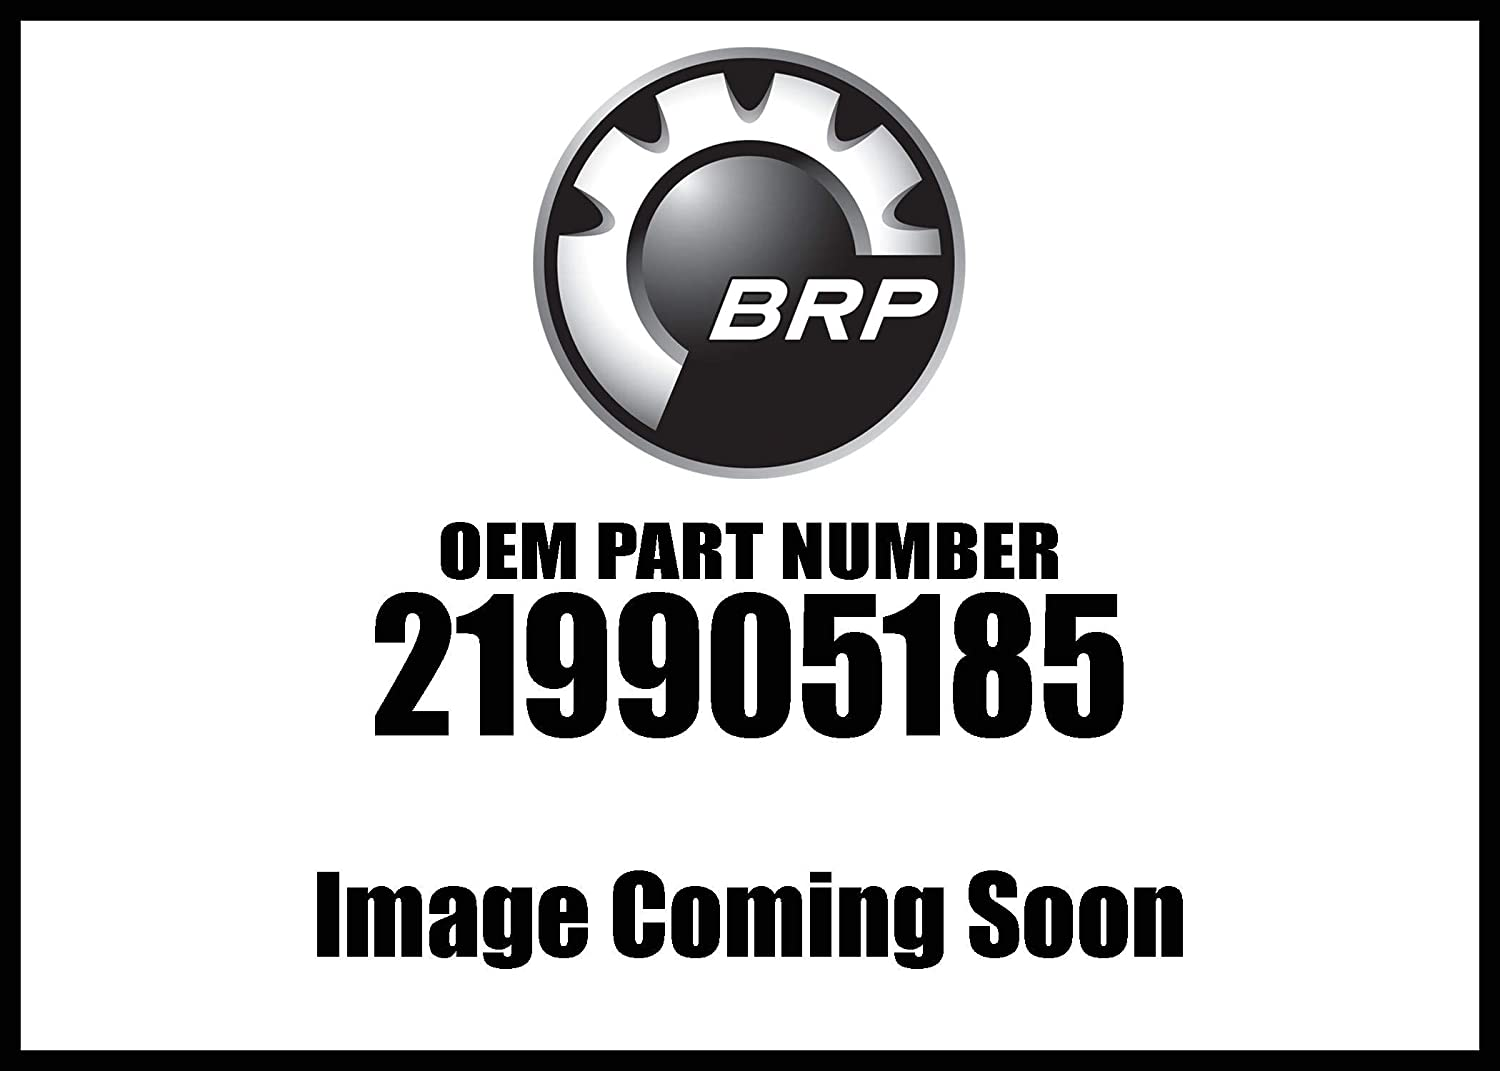 Sea-Doo 2018 Rxt 300 Front Decal Lateral Right 219905185 New Oem